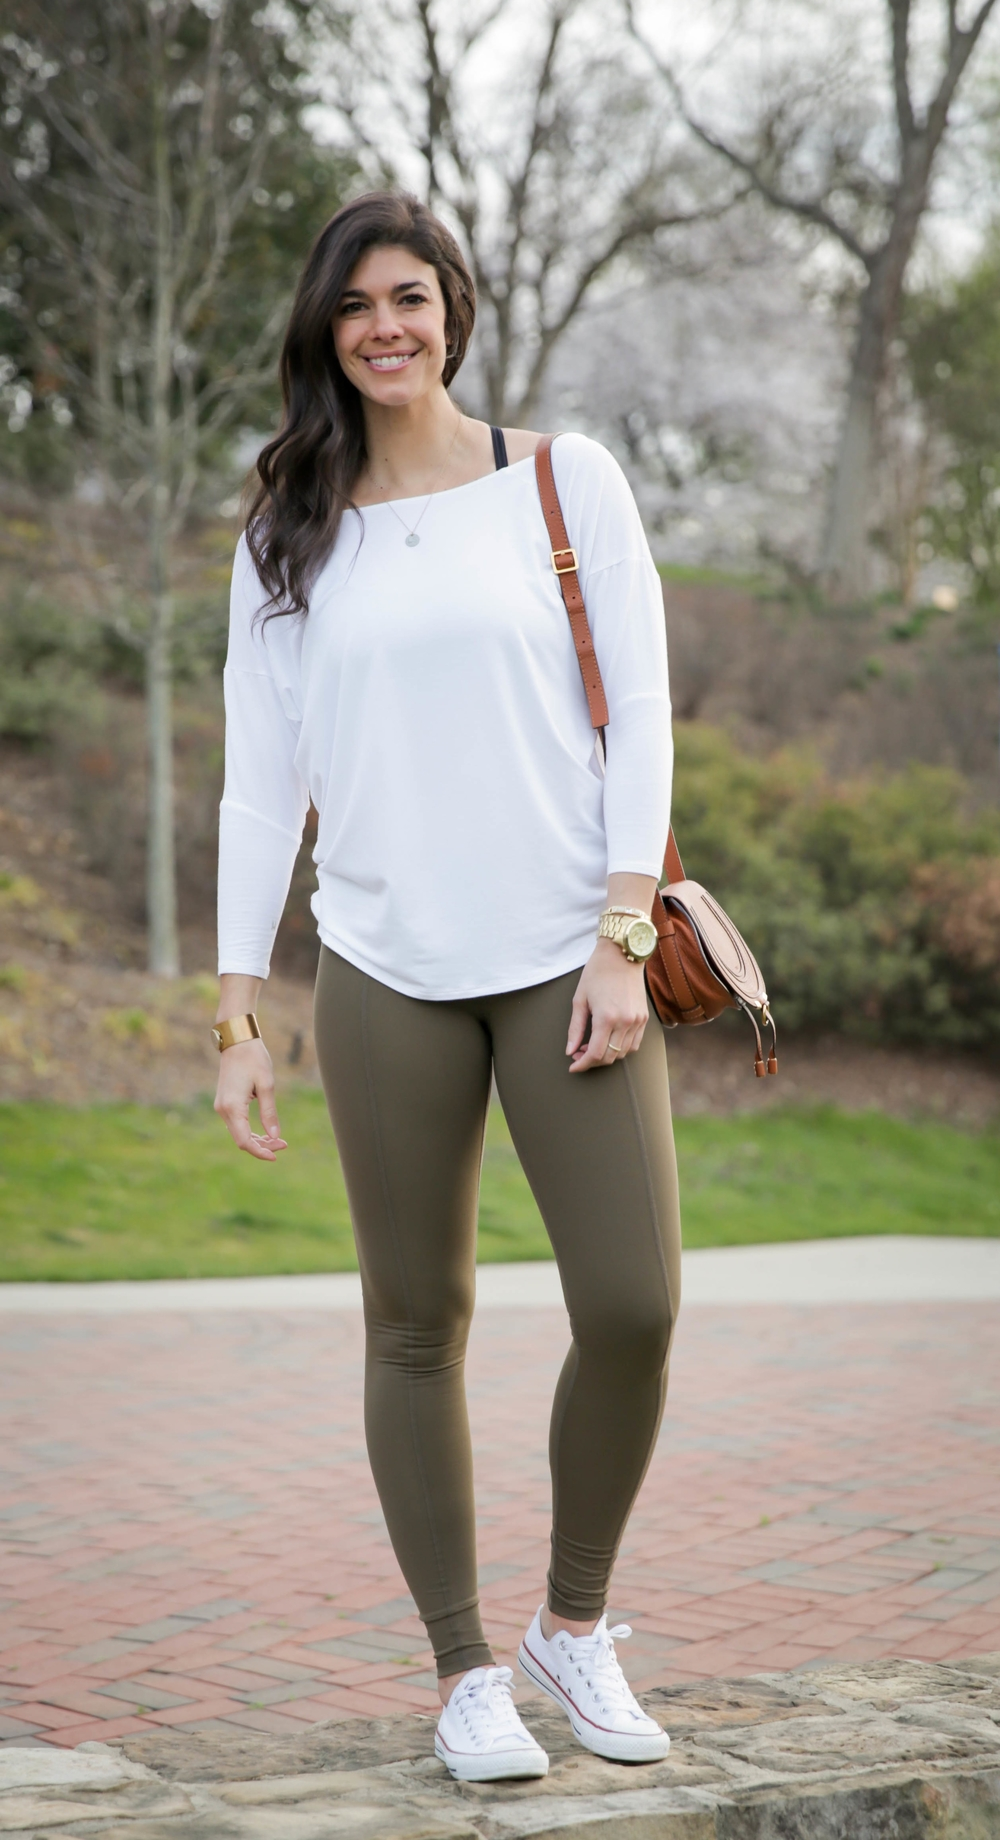 LaurenSchwaiger-Active-Style-Blog-Haven-Contour-Legging.jpg